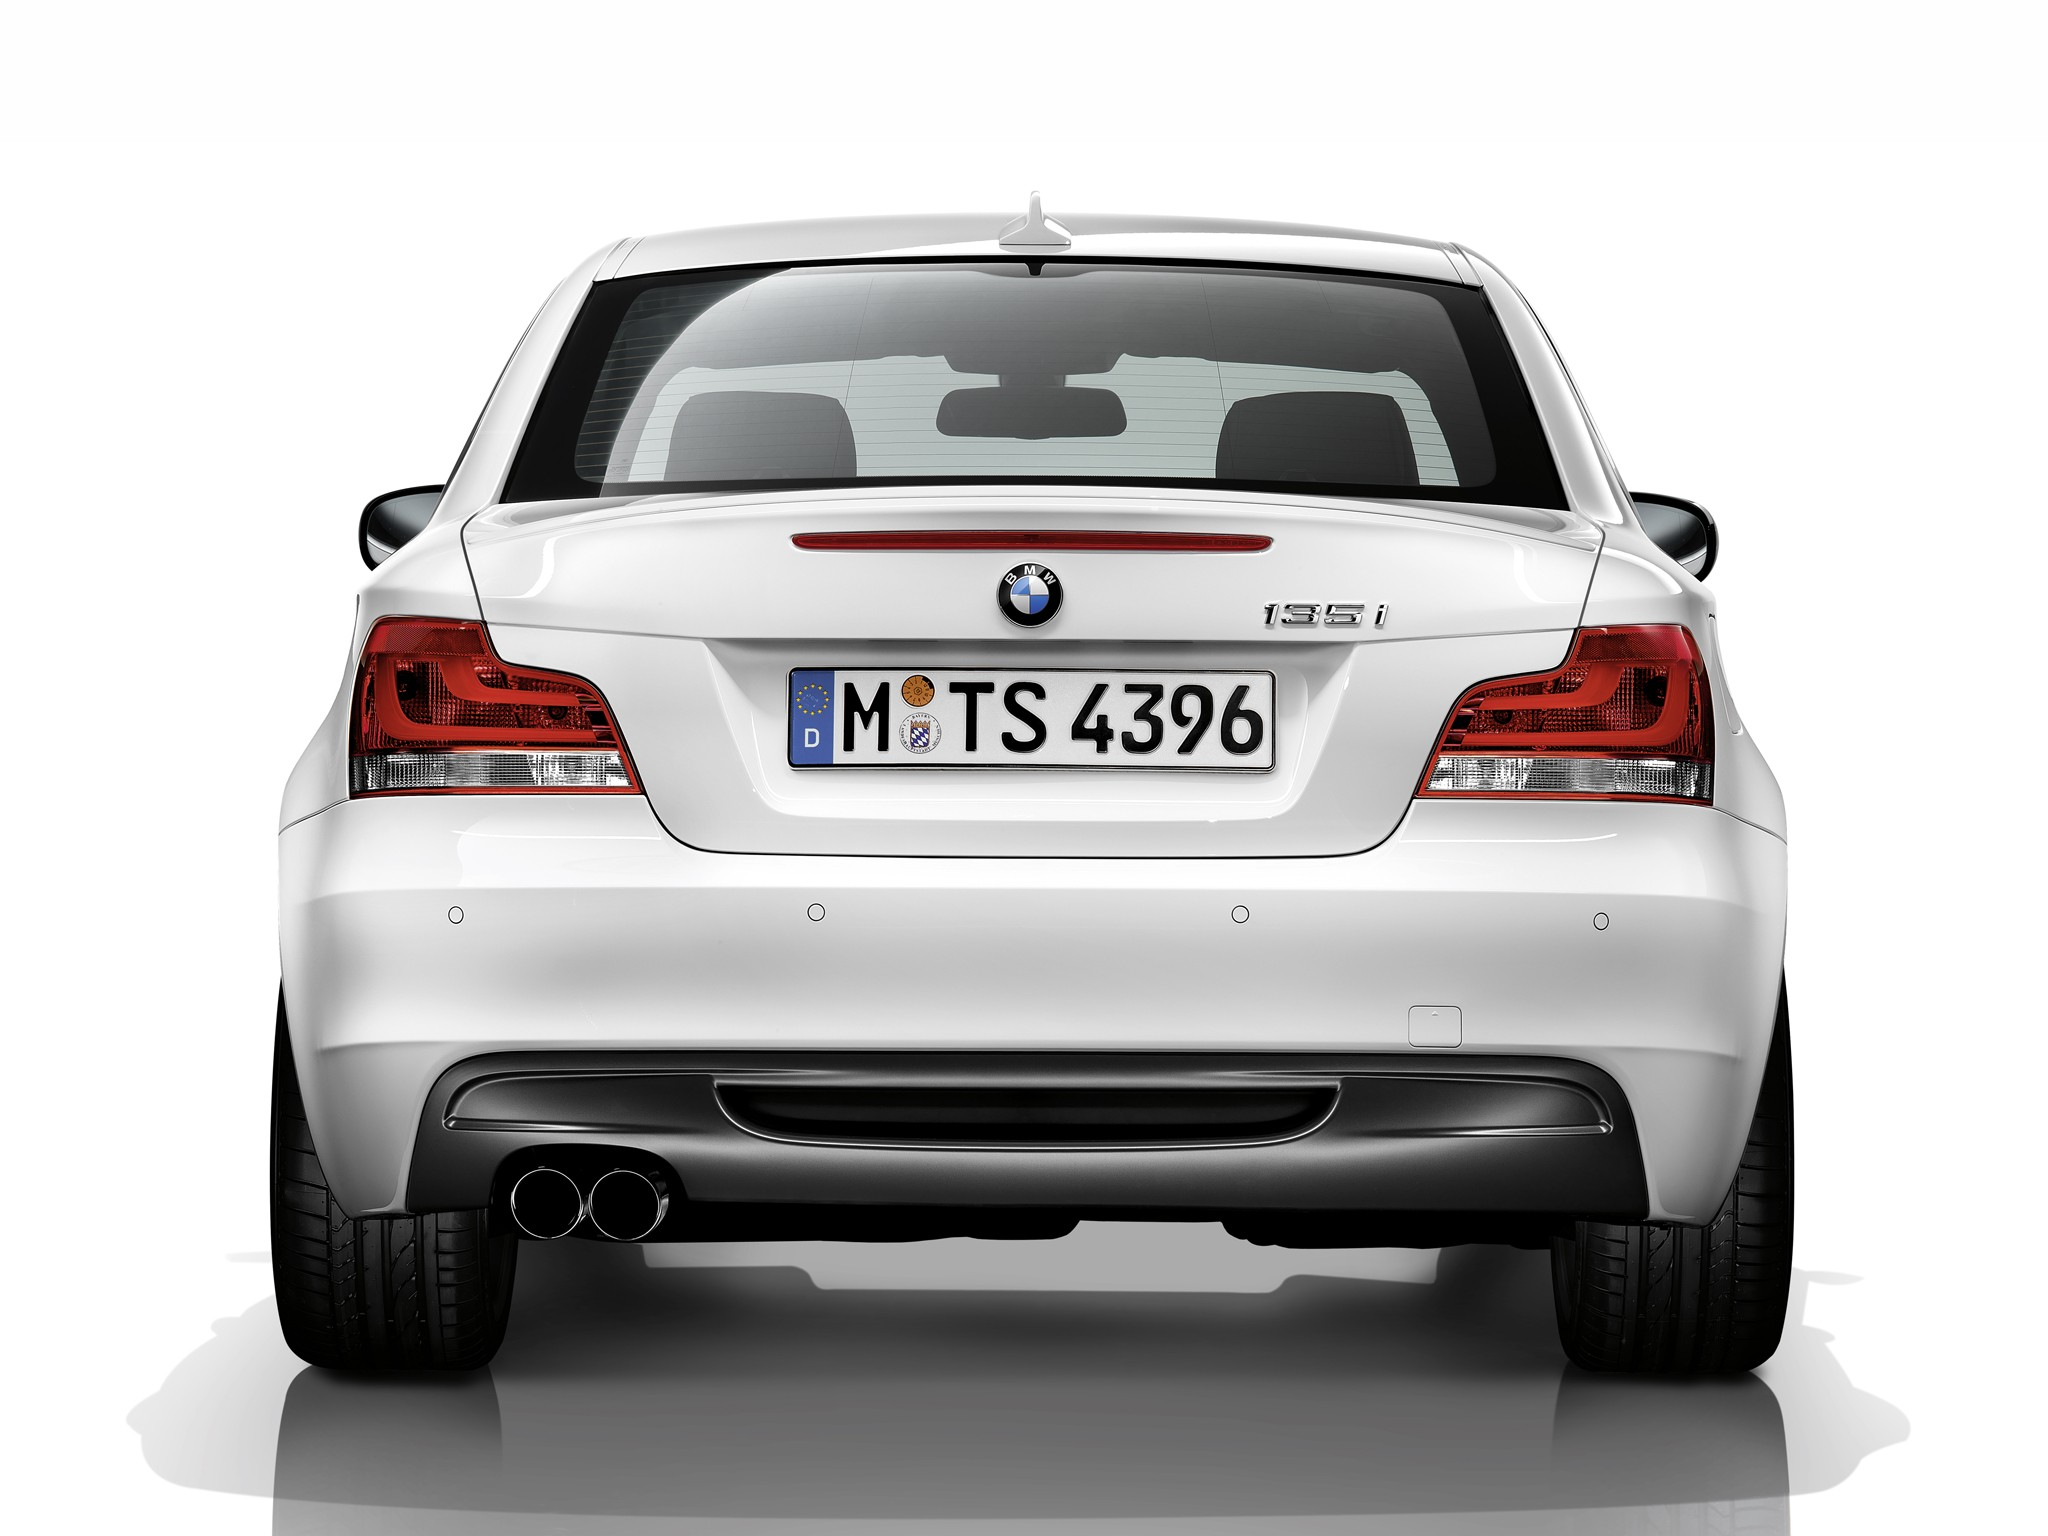 bmw 1 series coupe (e82) specs - 2010, 2011, 2012, 2013